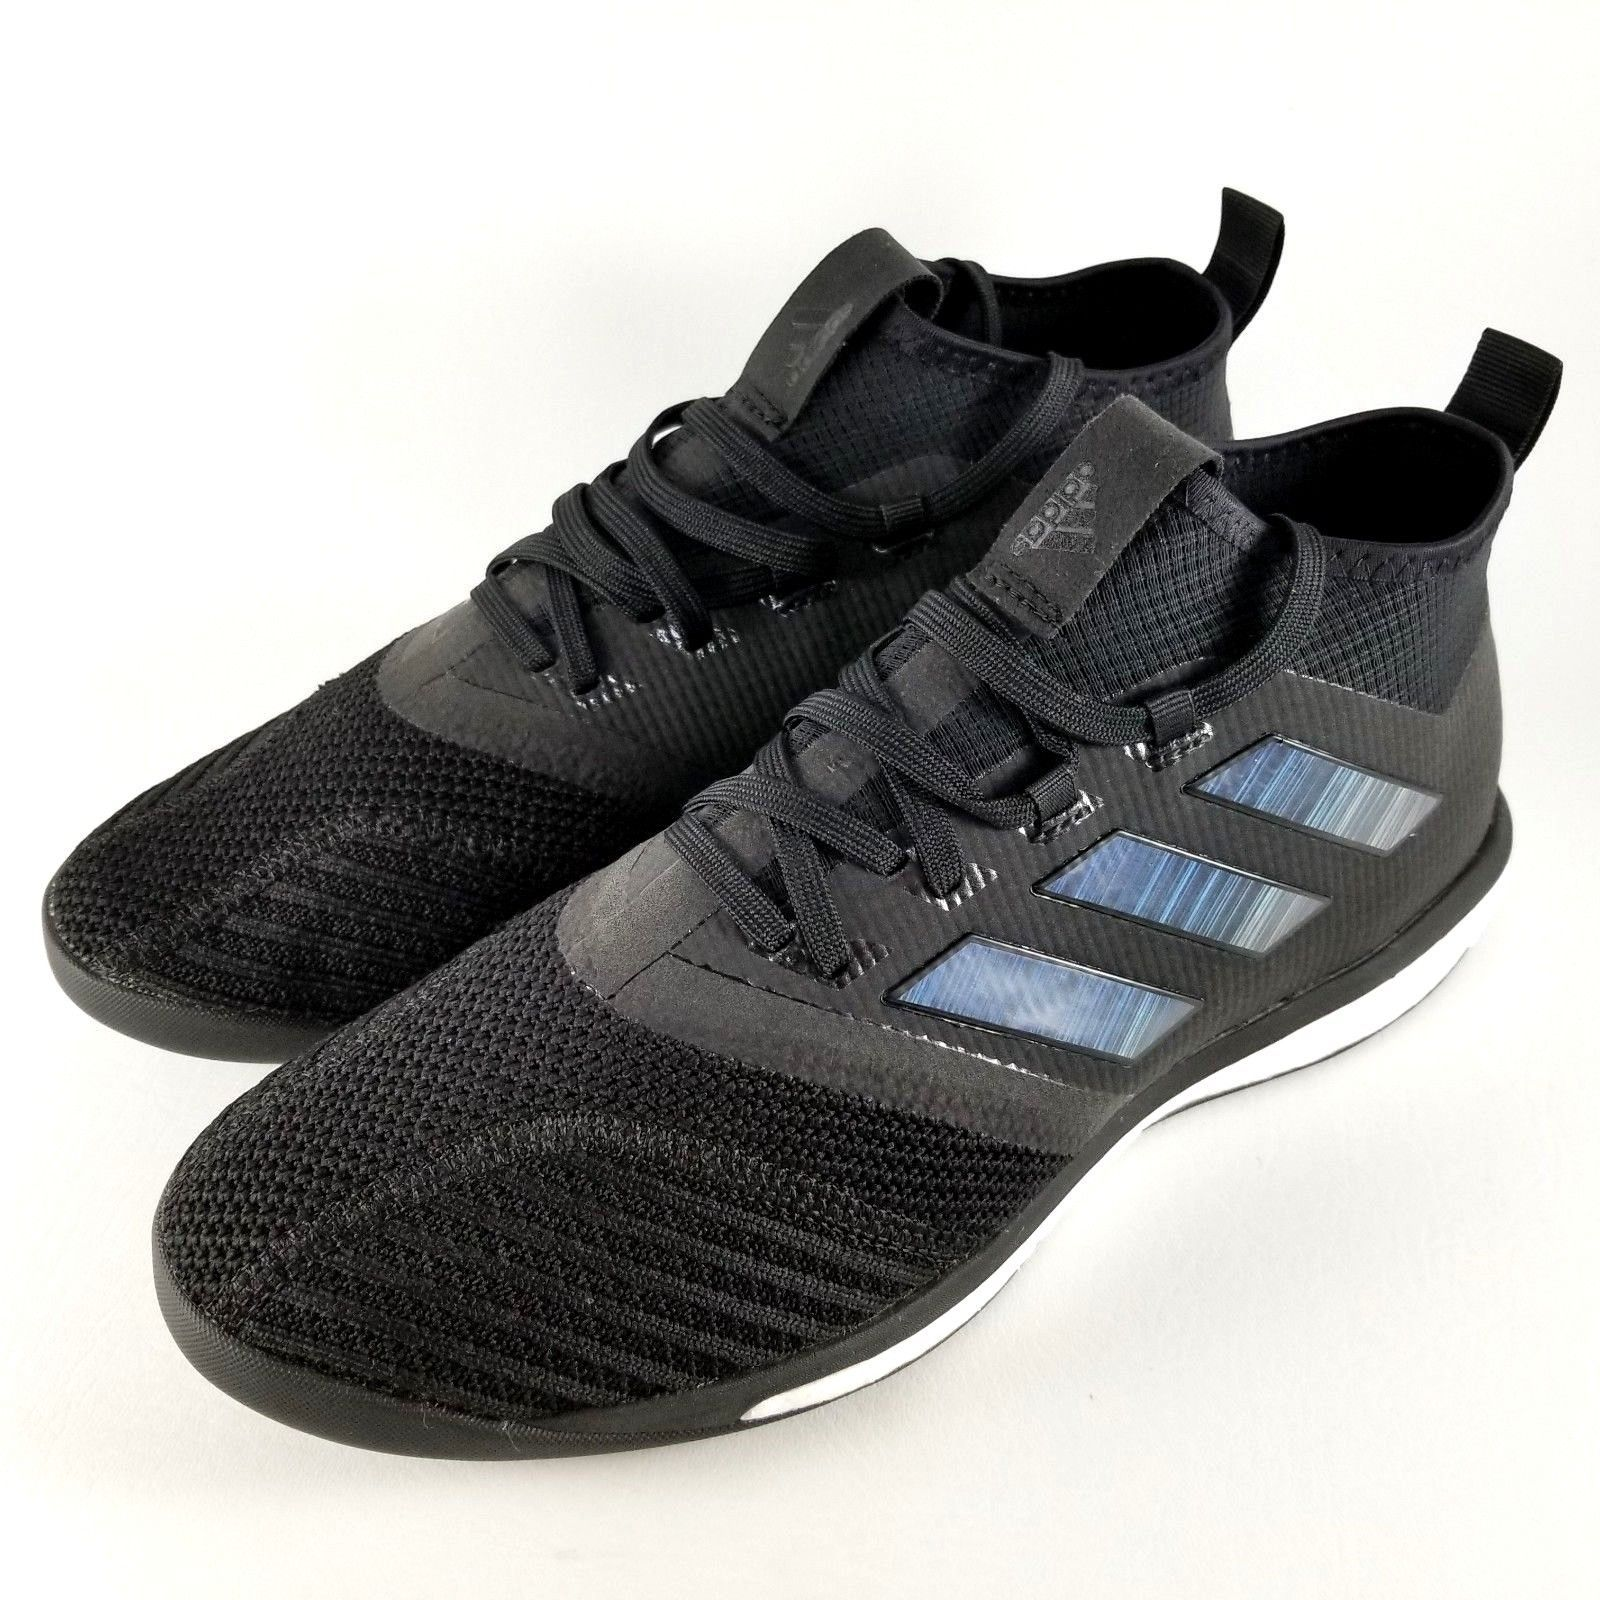 8a92d5a07 57. 57. Previous. adidas Ace Tango 17.1 TR Trainer Indoor Soccer Cleats  Size 9.5 Mens Black White